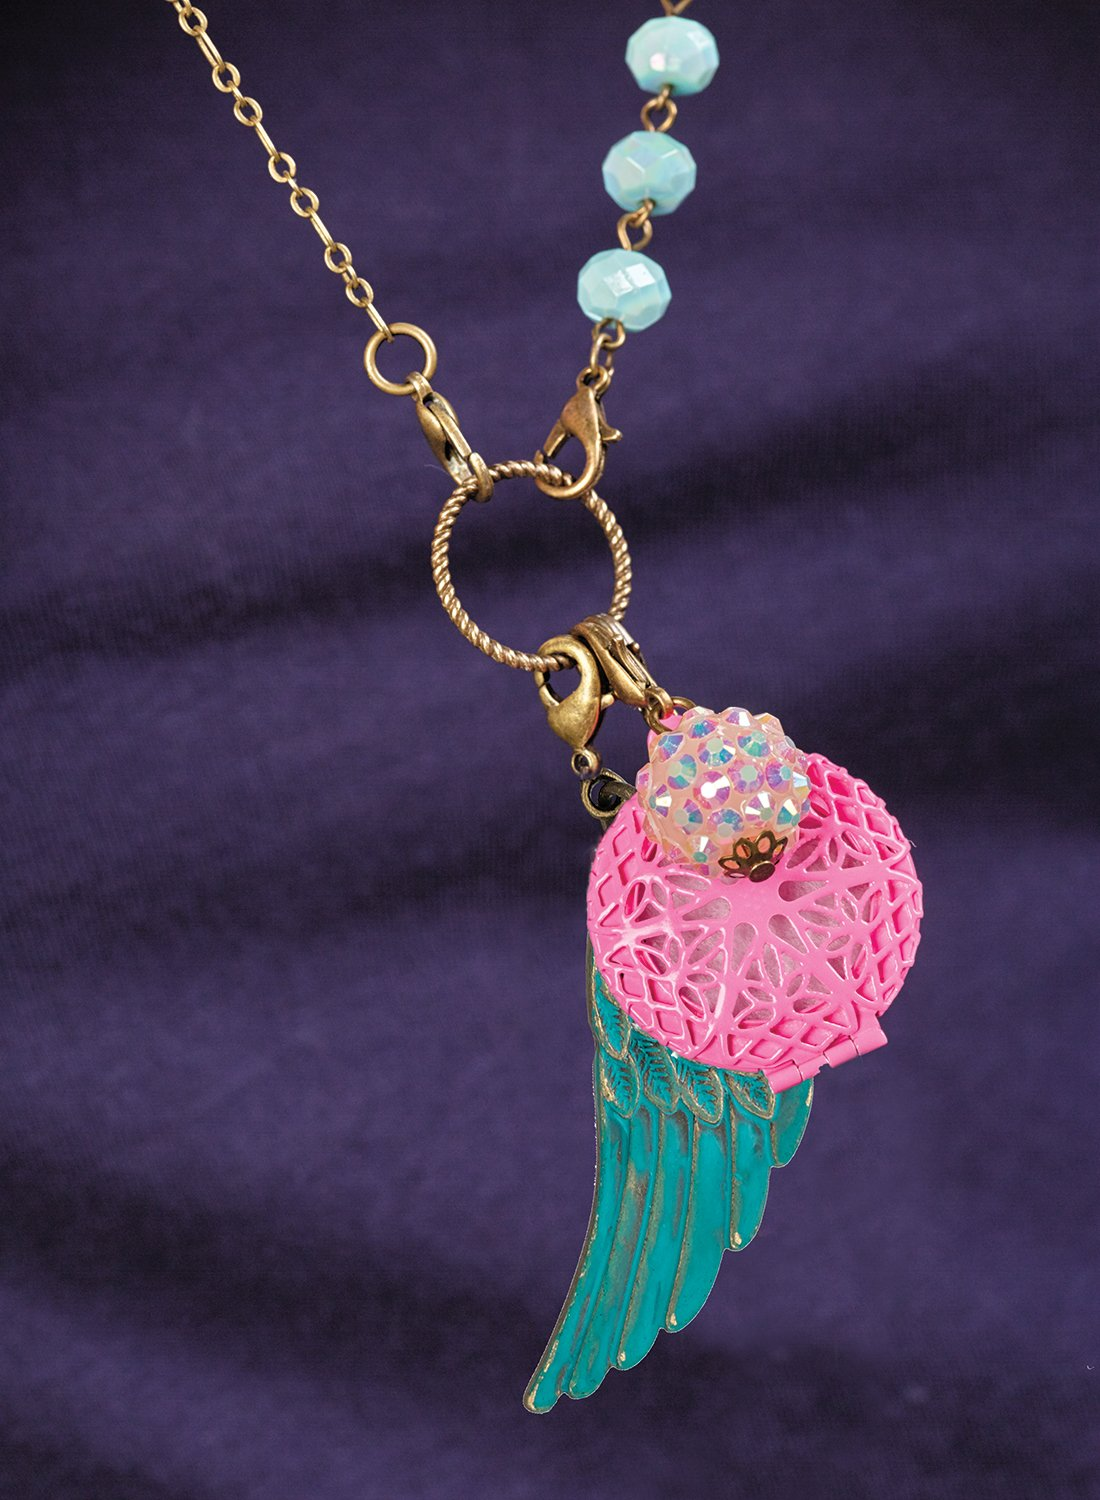 CRAFTIVITY AromaJewelry Lovely Lockets - Essential Oil Jewelry Making Kit by CRAFTIVITY (Image #8)